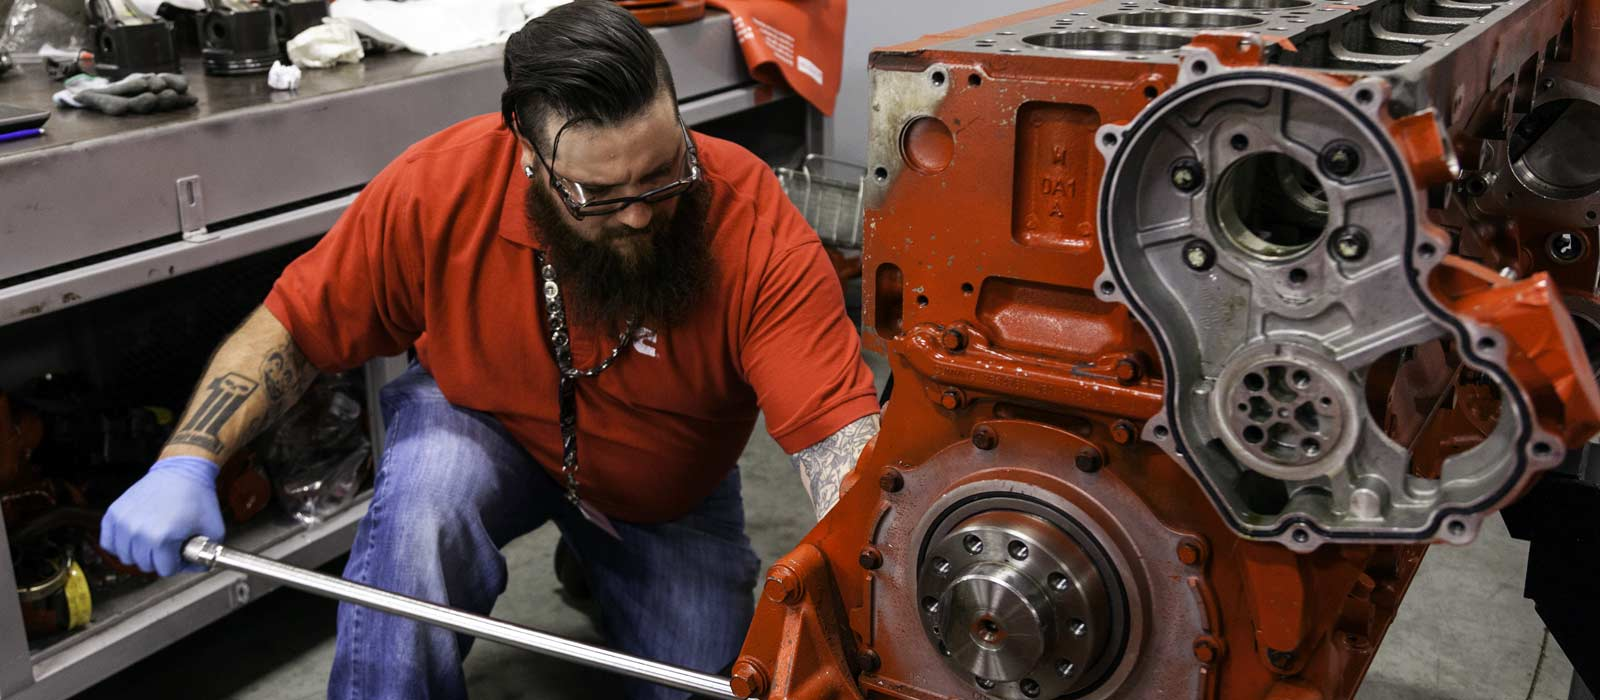 Diesel Mechanic Interview Tips: How to Prepare Before Meeting with an Employer